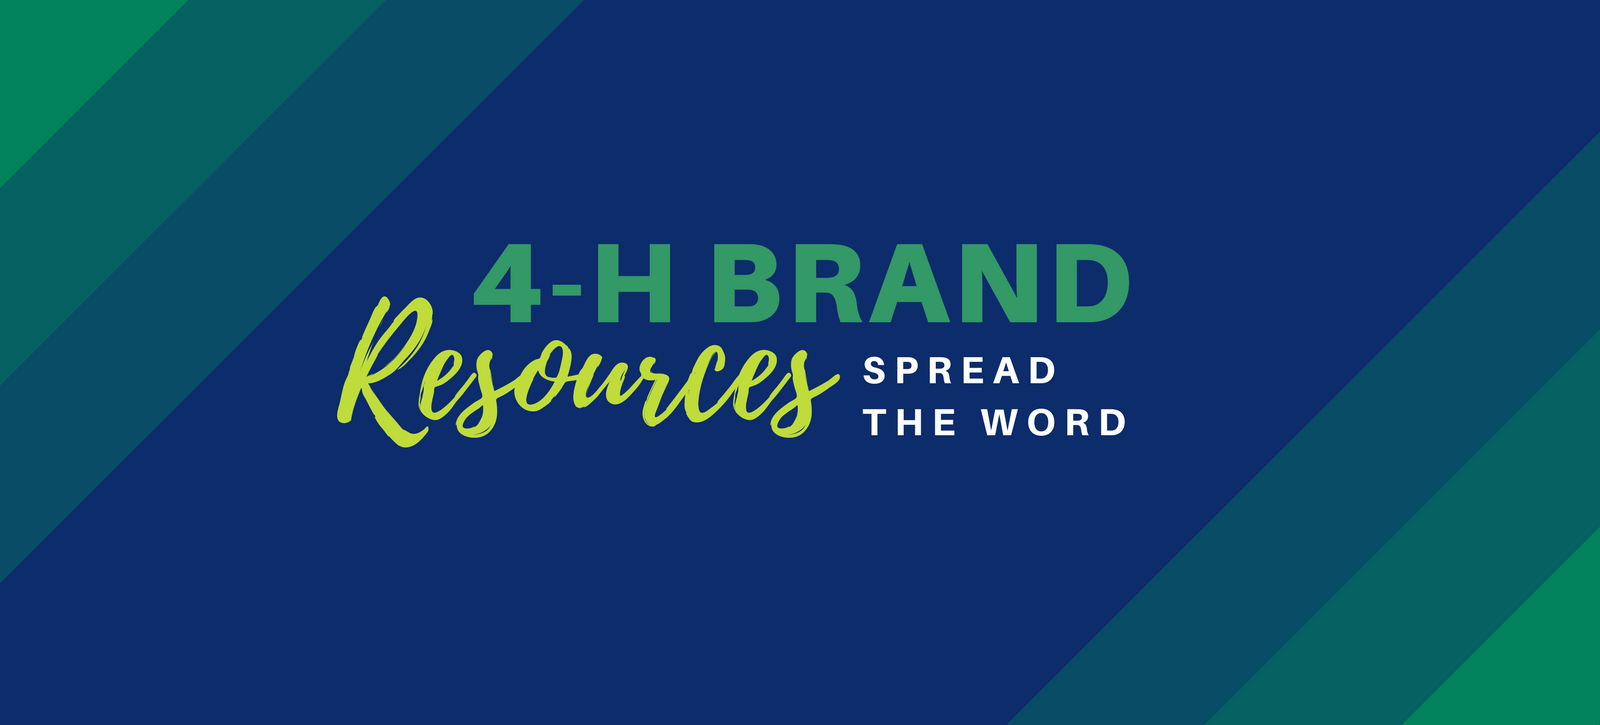 4-H brand resources banner